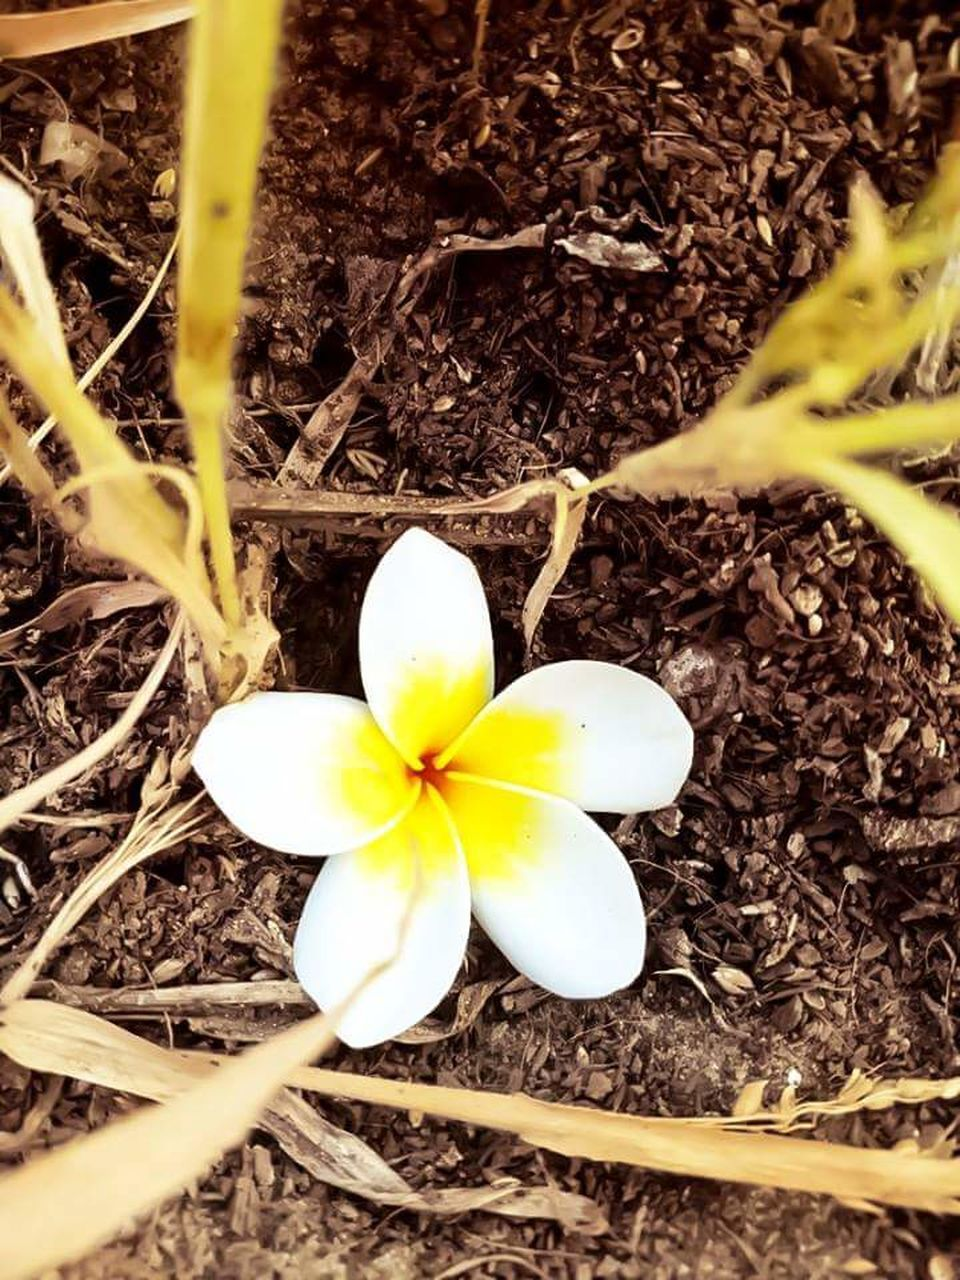 flower, high angle view, fragility, nature, flower head, petal, beauty in nature, field, no people, outdoors, day, freshness, close-up, growth, frangipani, blooming